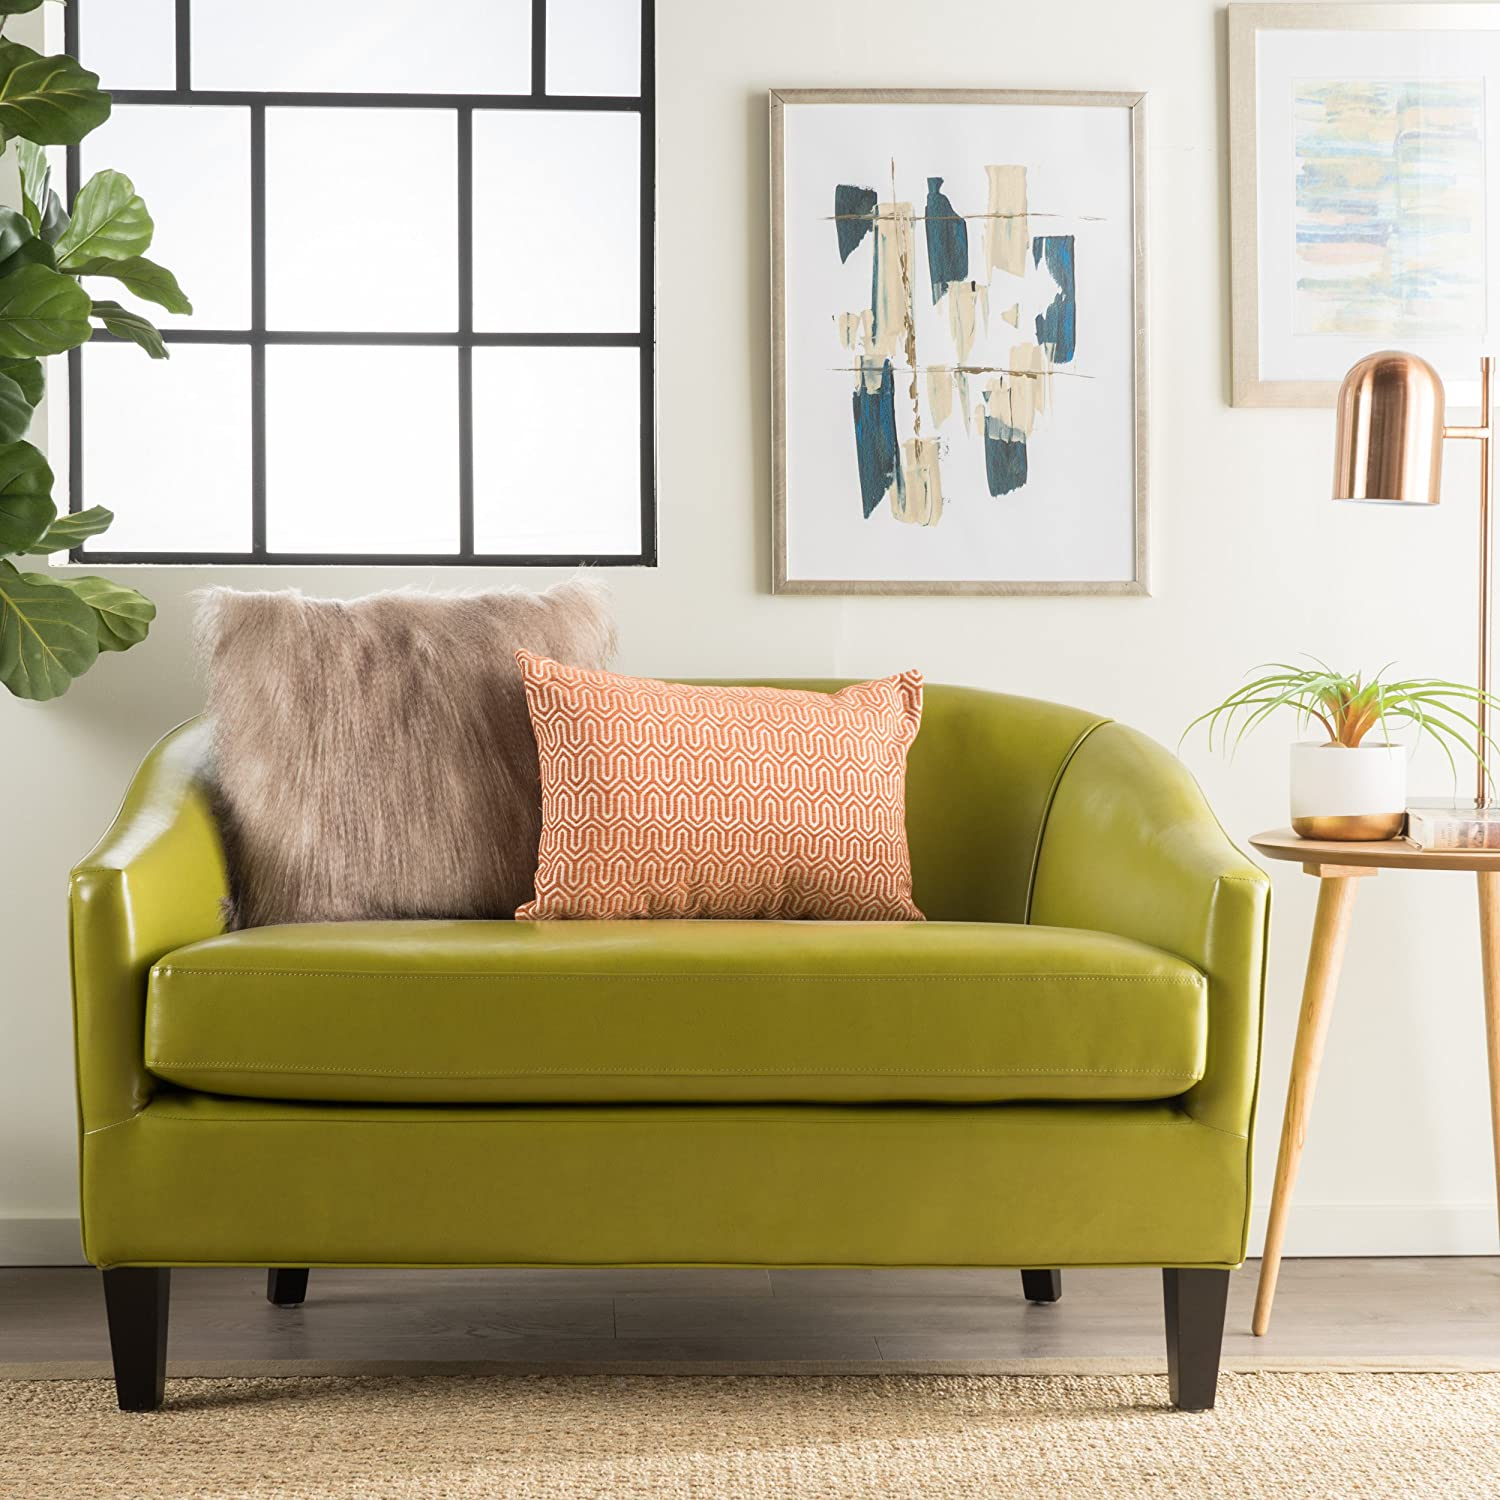 modshop crescent art hunter petite products deco loveseat sofa green with pillows